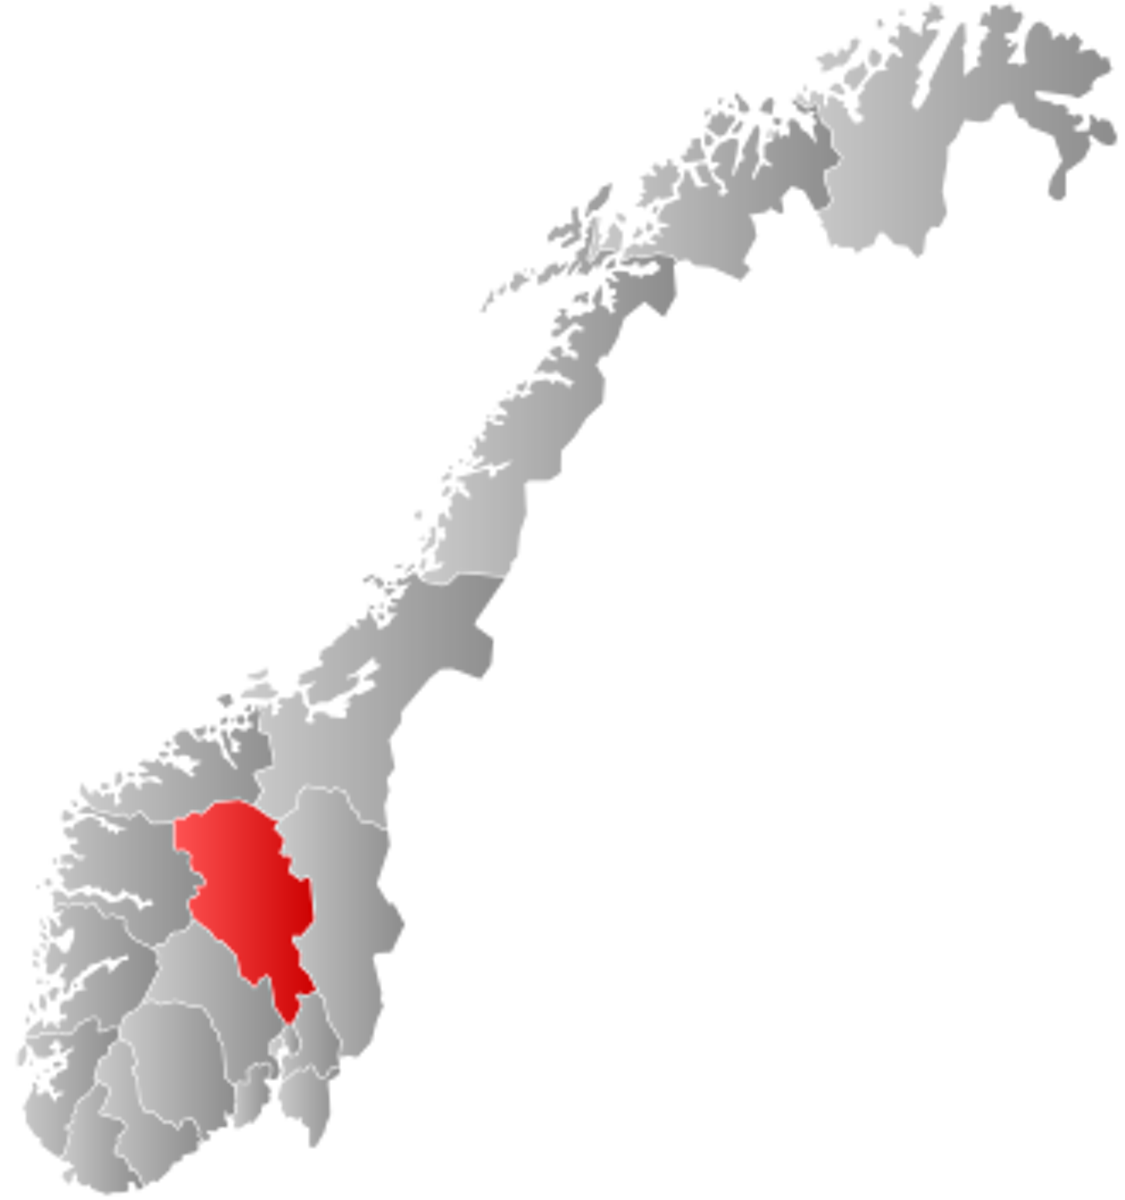 330px-Norway_Counties_Oppland_Position.svg